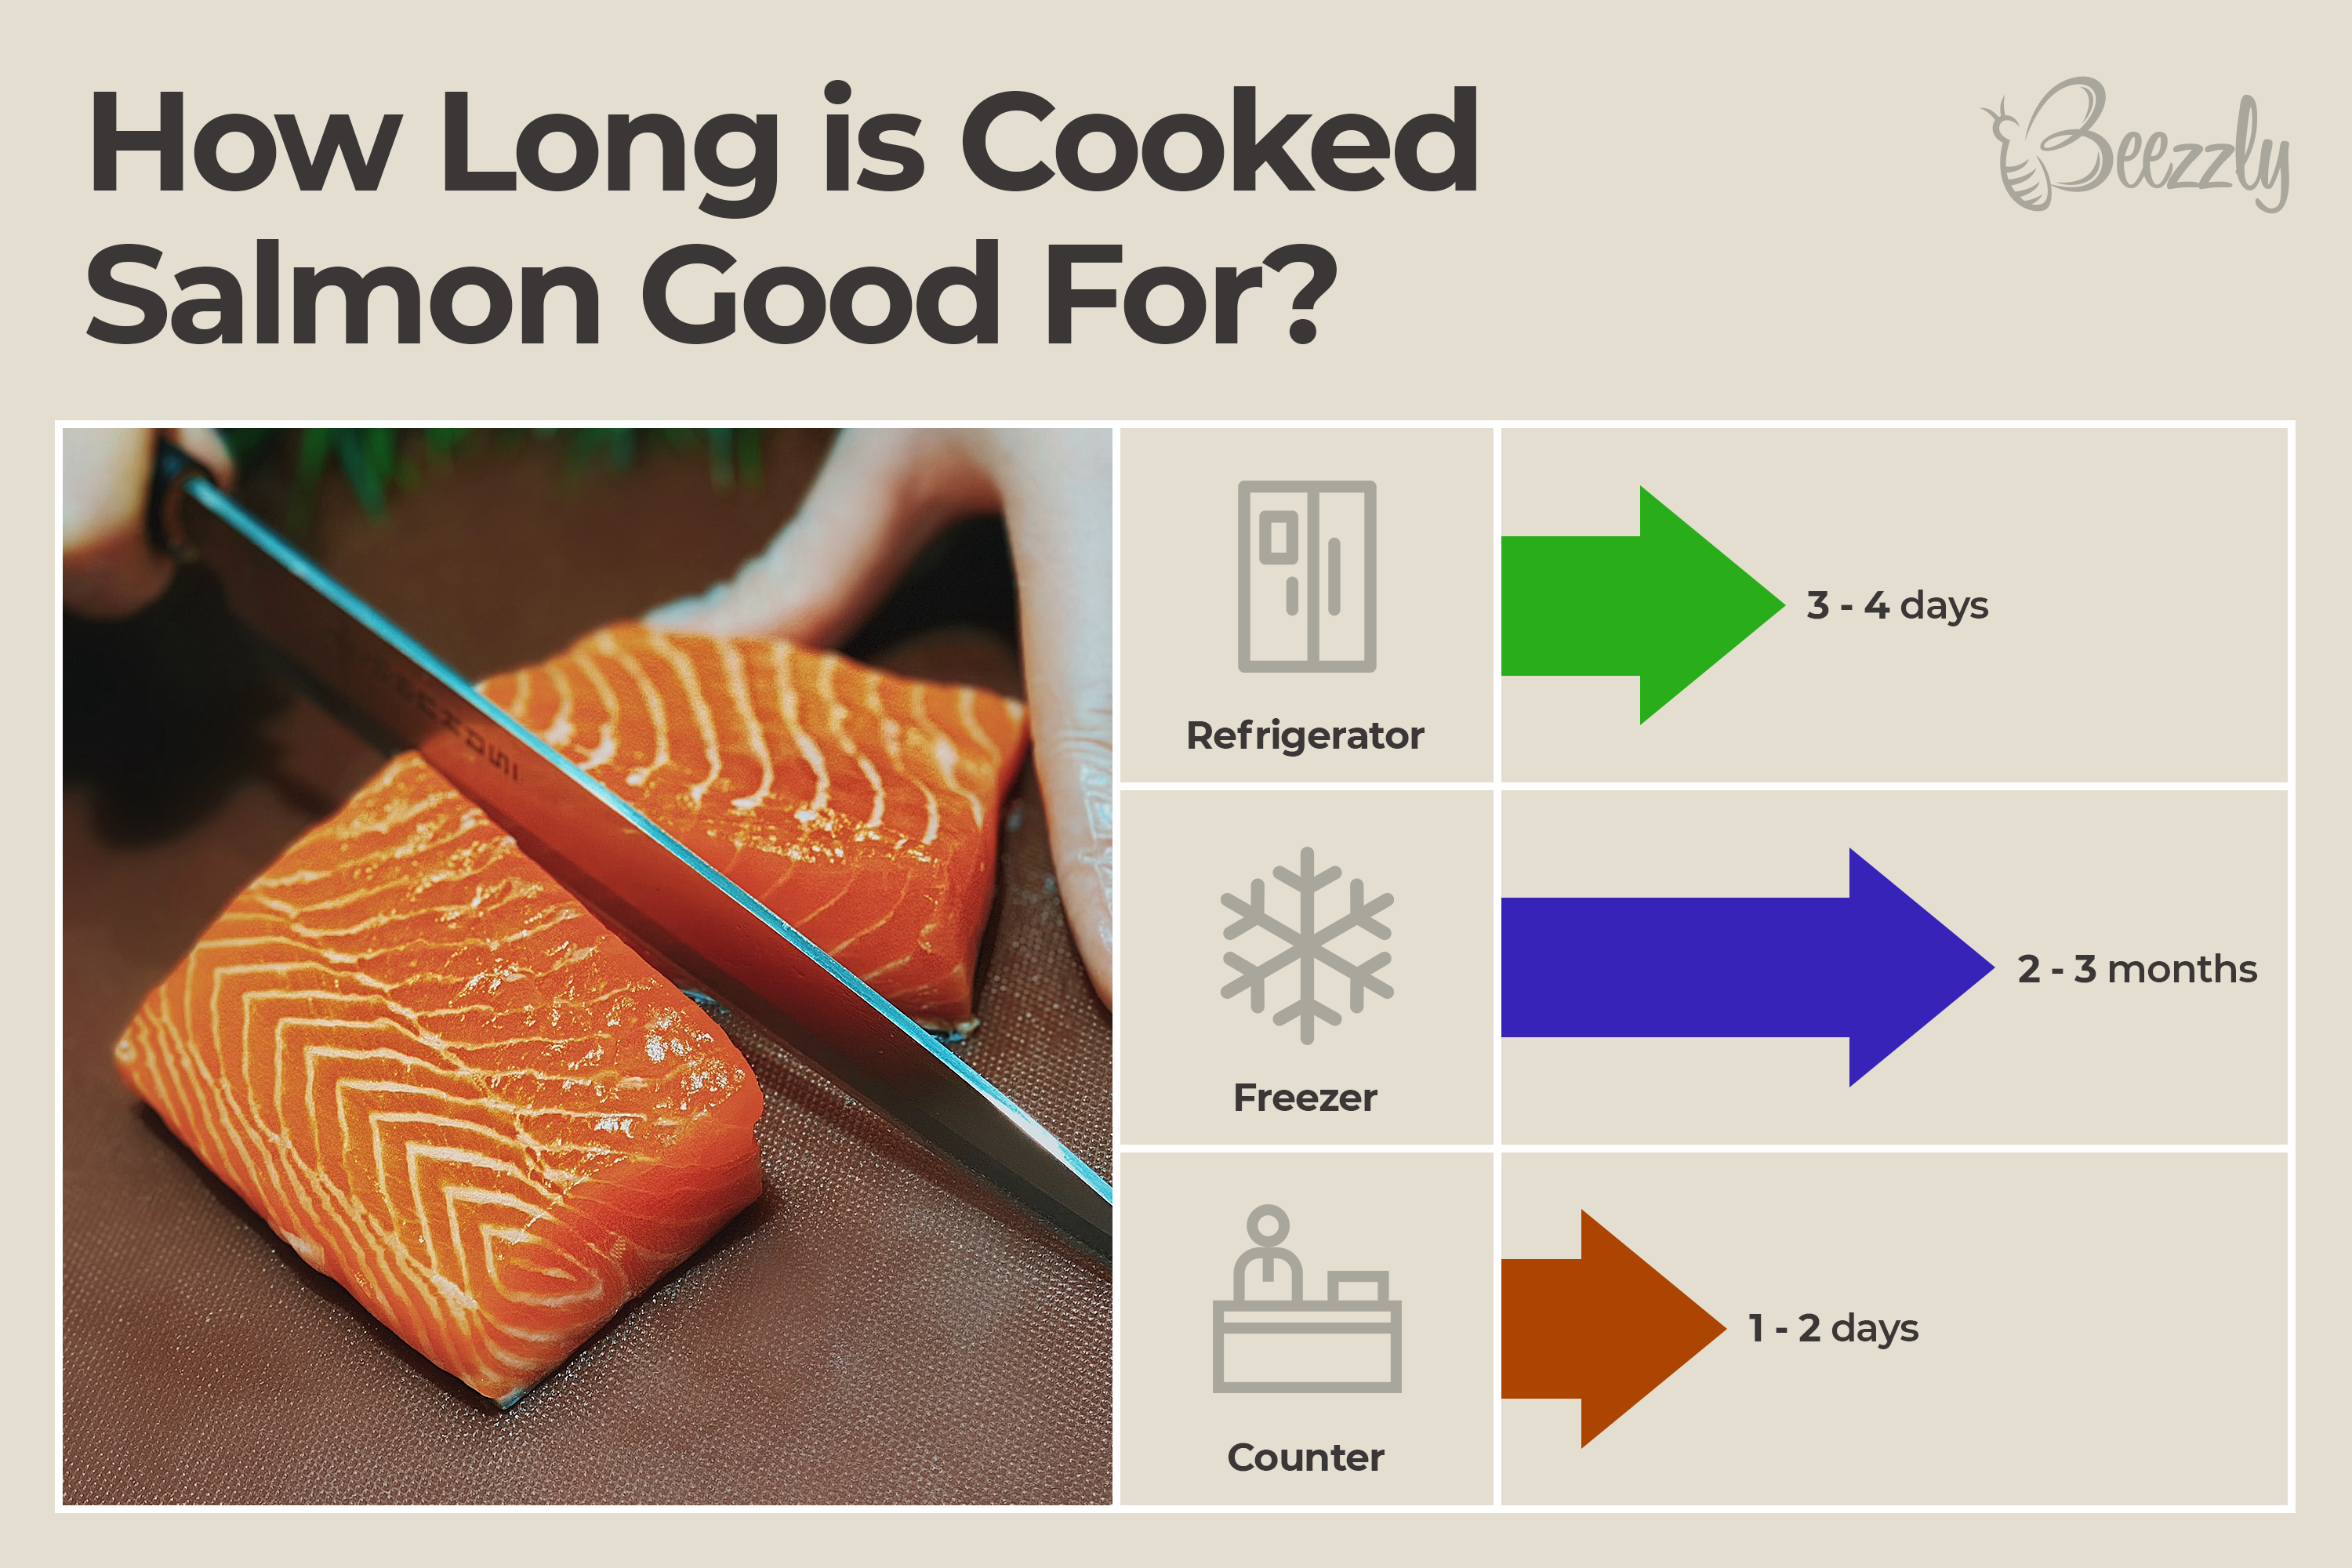 how long is cooked salmon good for